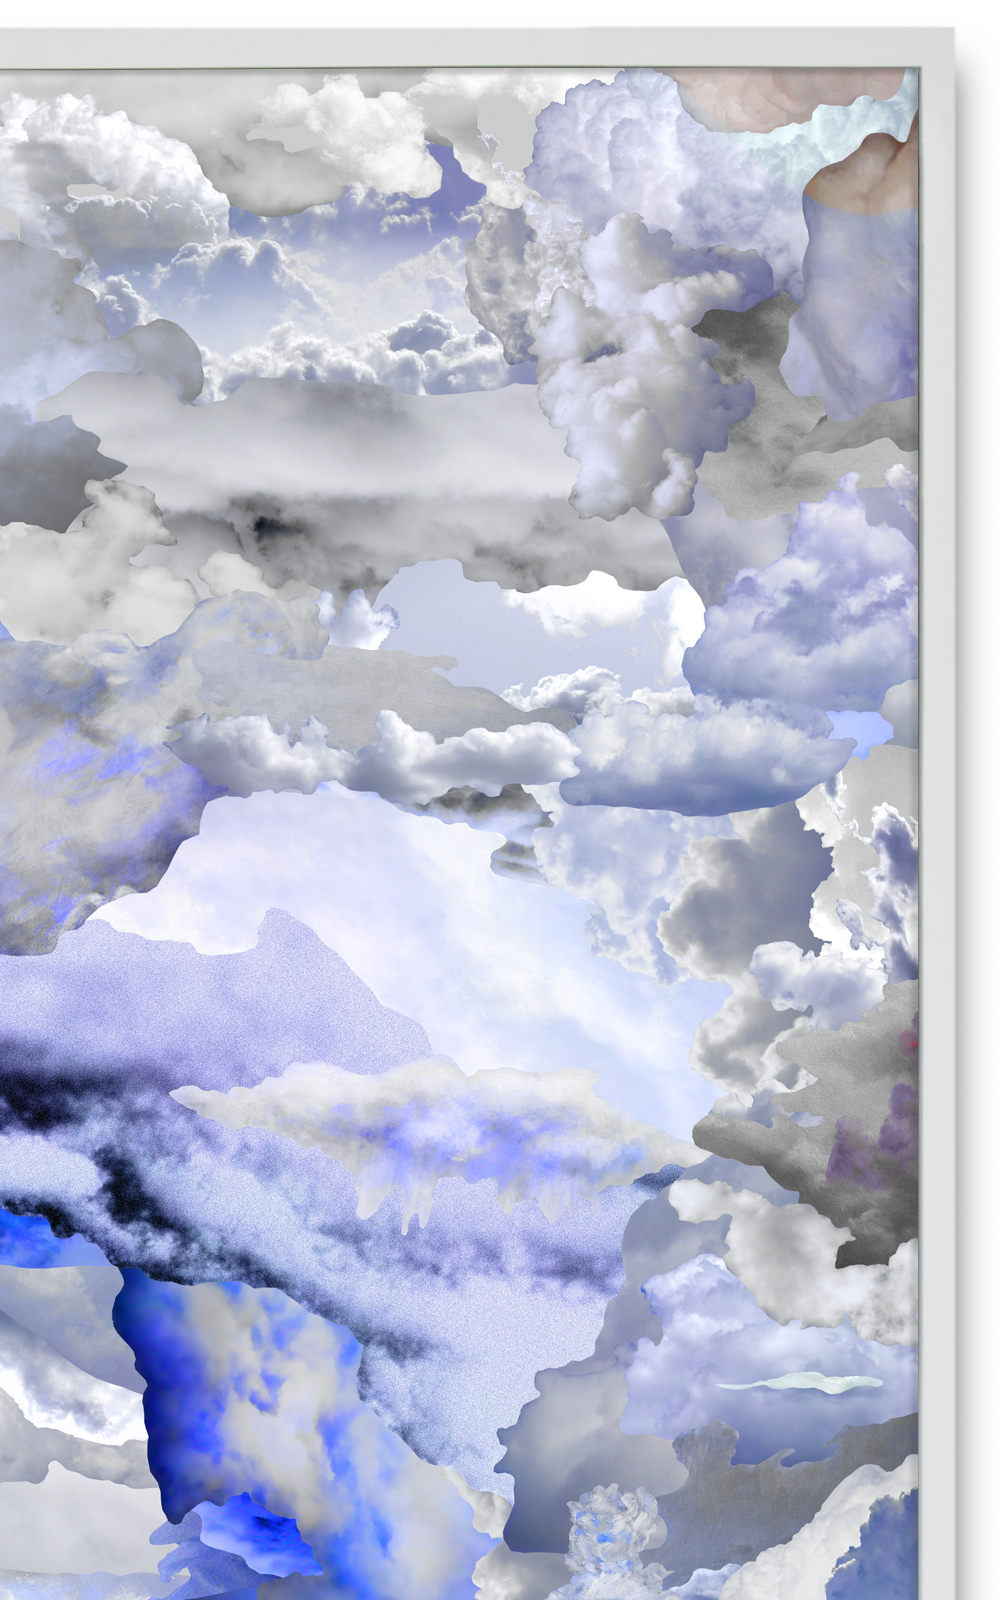 Case Simmons, Simmons & Burke, Blue Clouds A, Cloud Collage, Pigment Print, Digital Collage, Digital Art, Photoshop Collage, Contemporary Collage, Case Simmons Art, Collage Fine Art, Abstract Digital Collage, LACMA Acquisition, Kohn Gallery